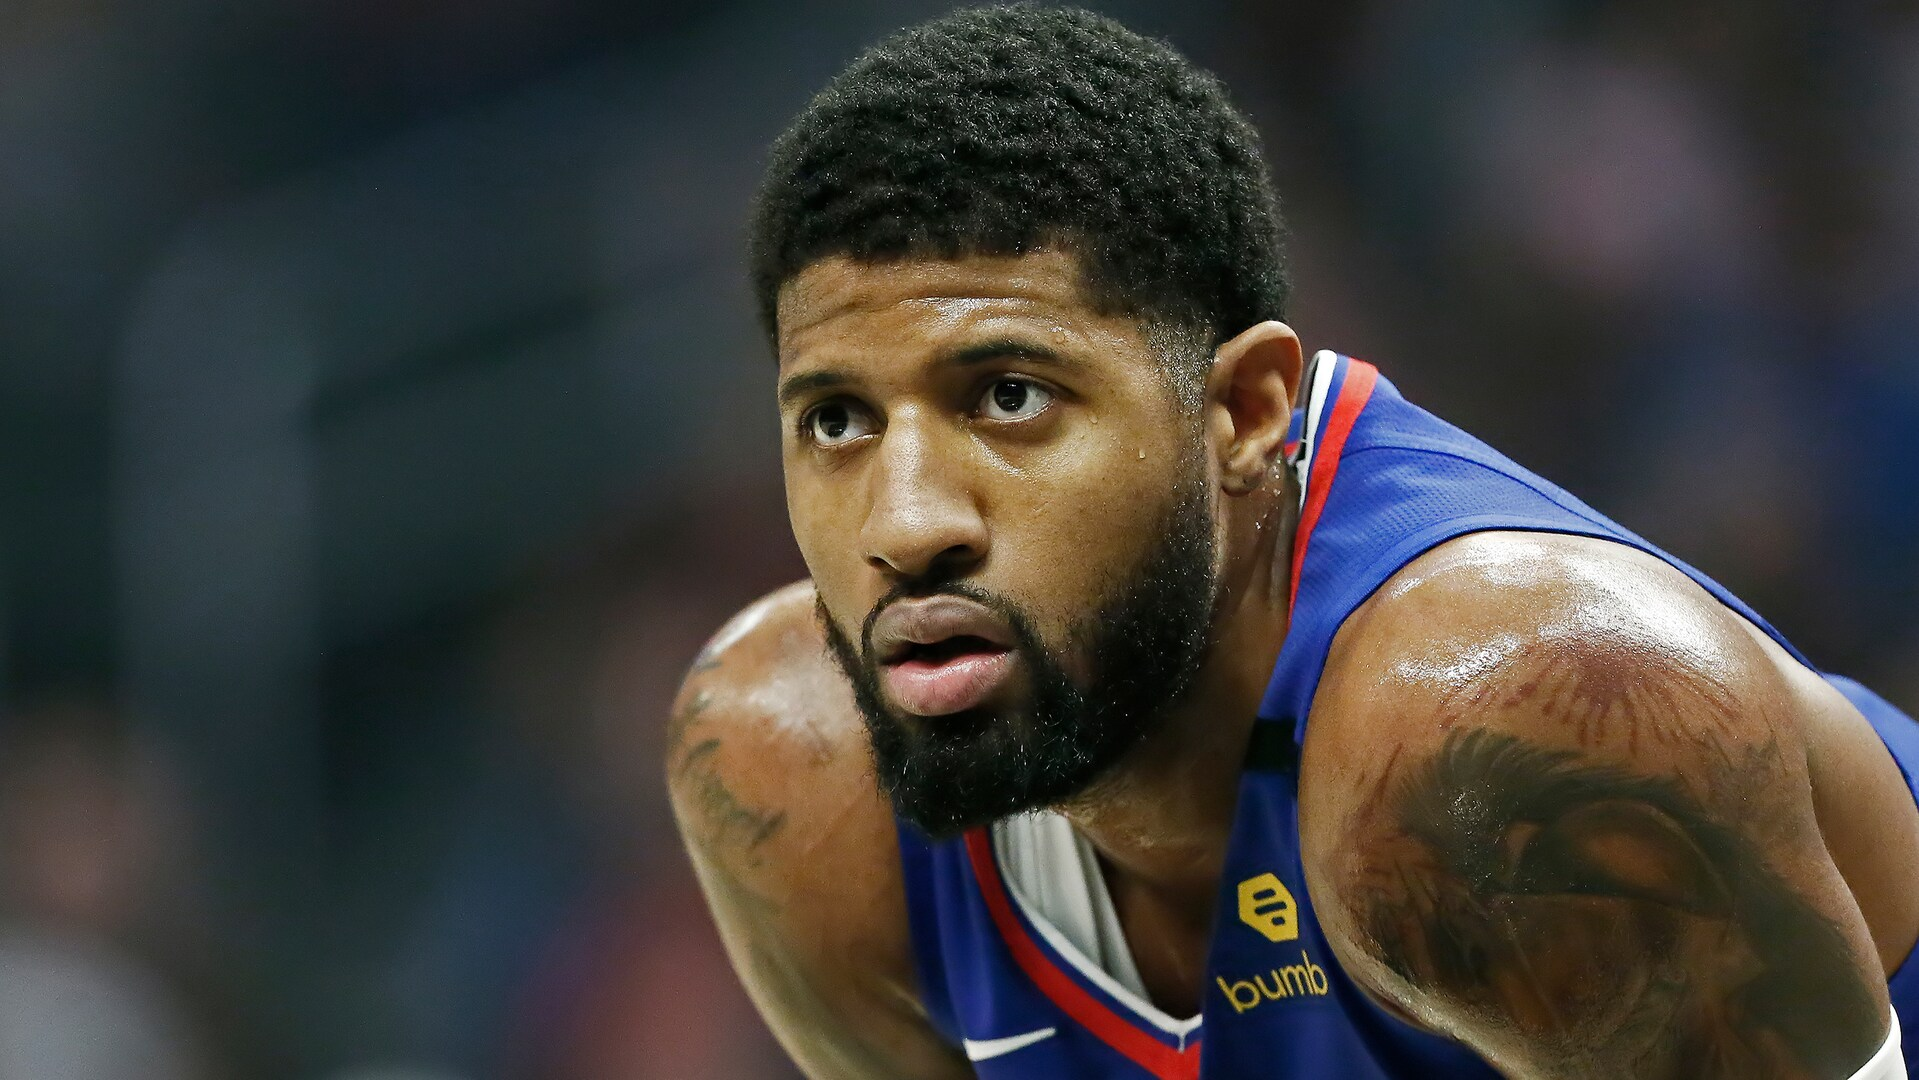 Paul George (hamstring) out Friday, won't travel with Clippers to Denver